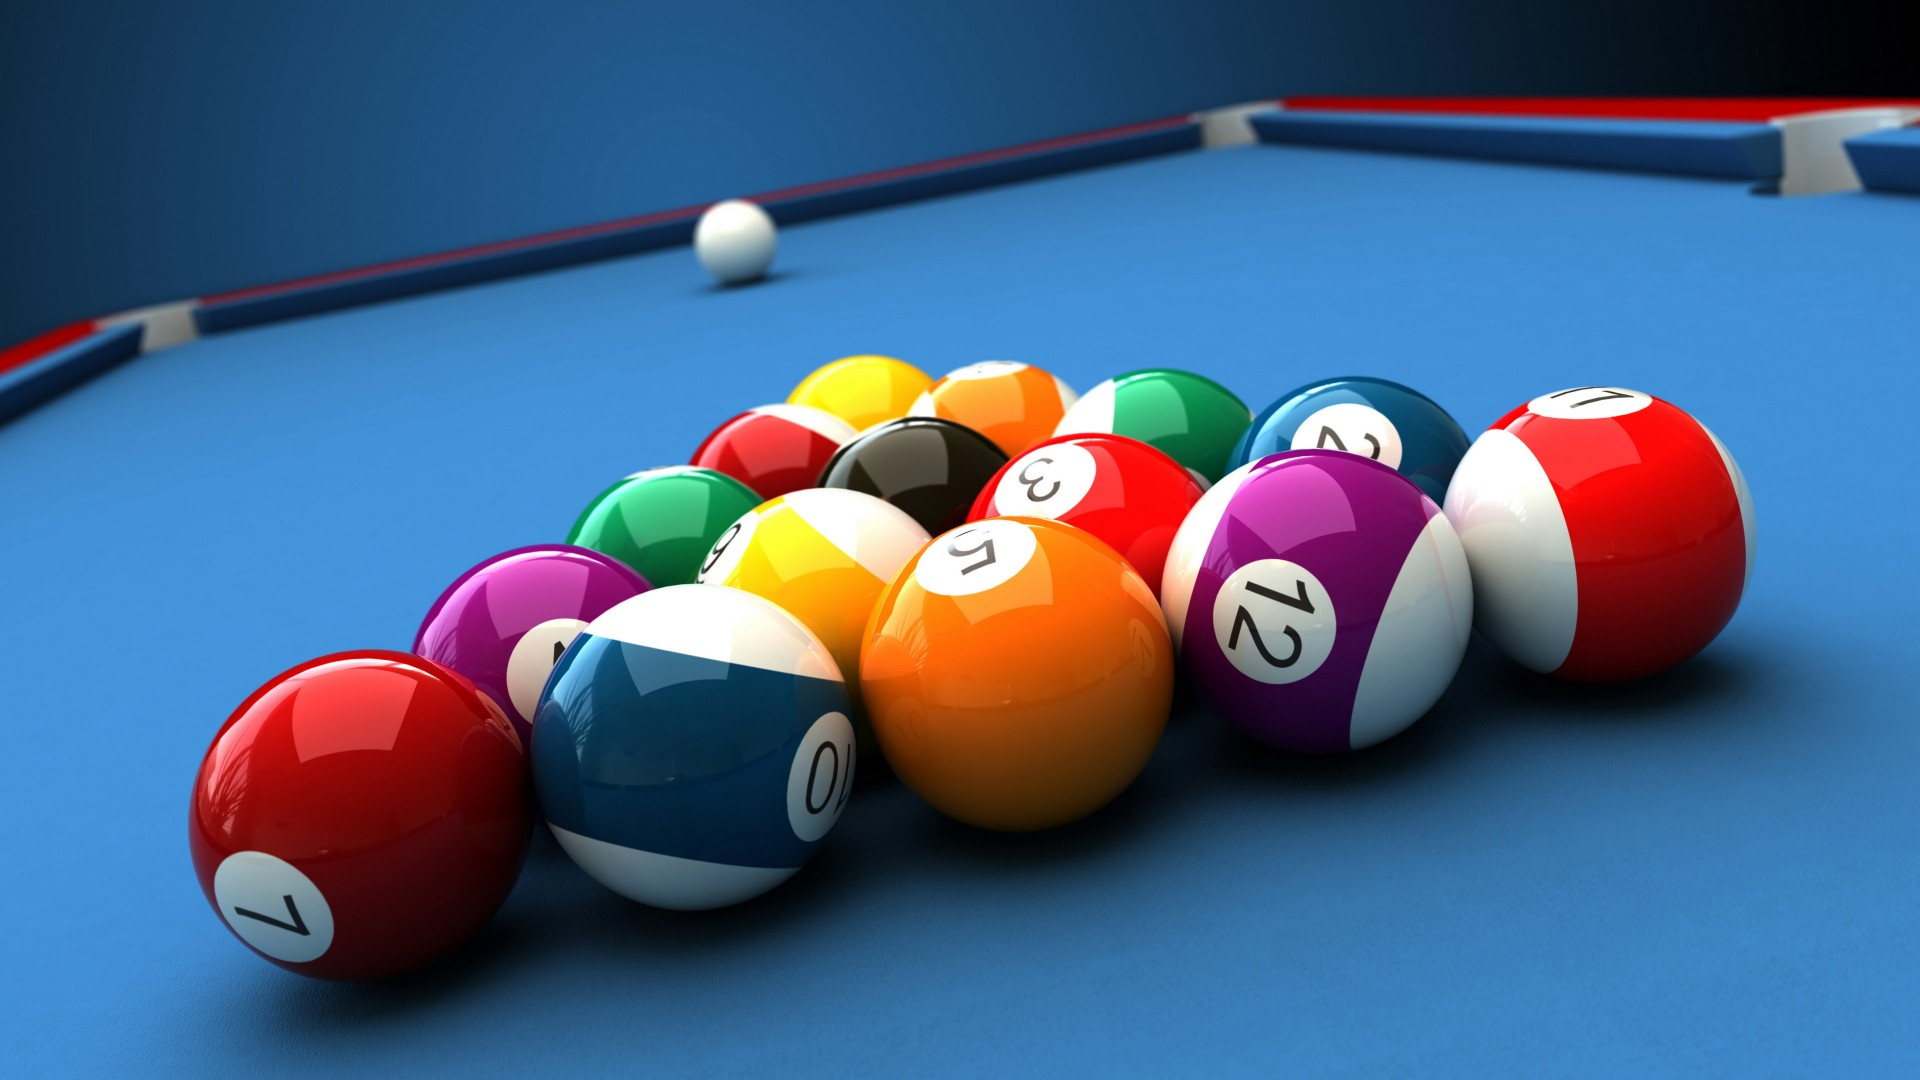 HQ Billiard Wallpapers | File 199.32Kb